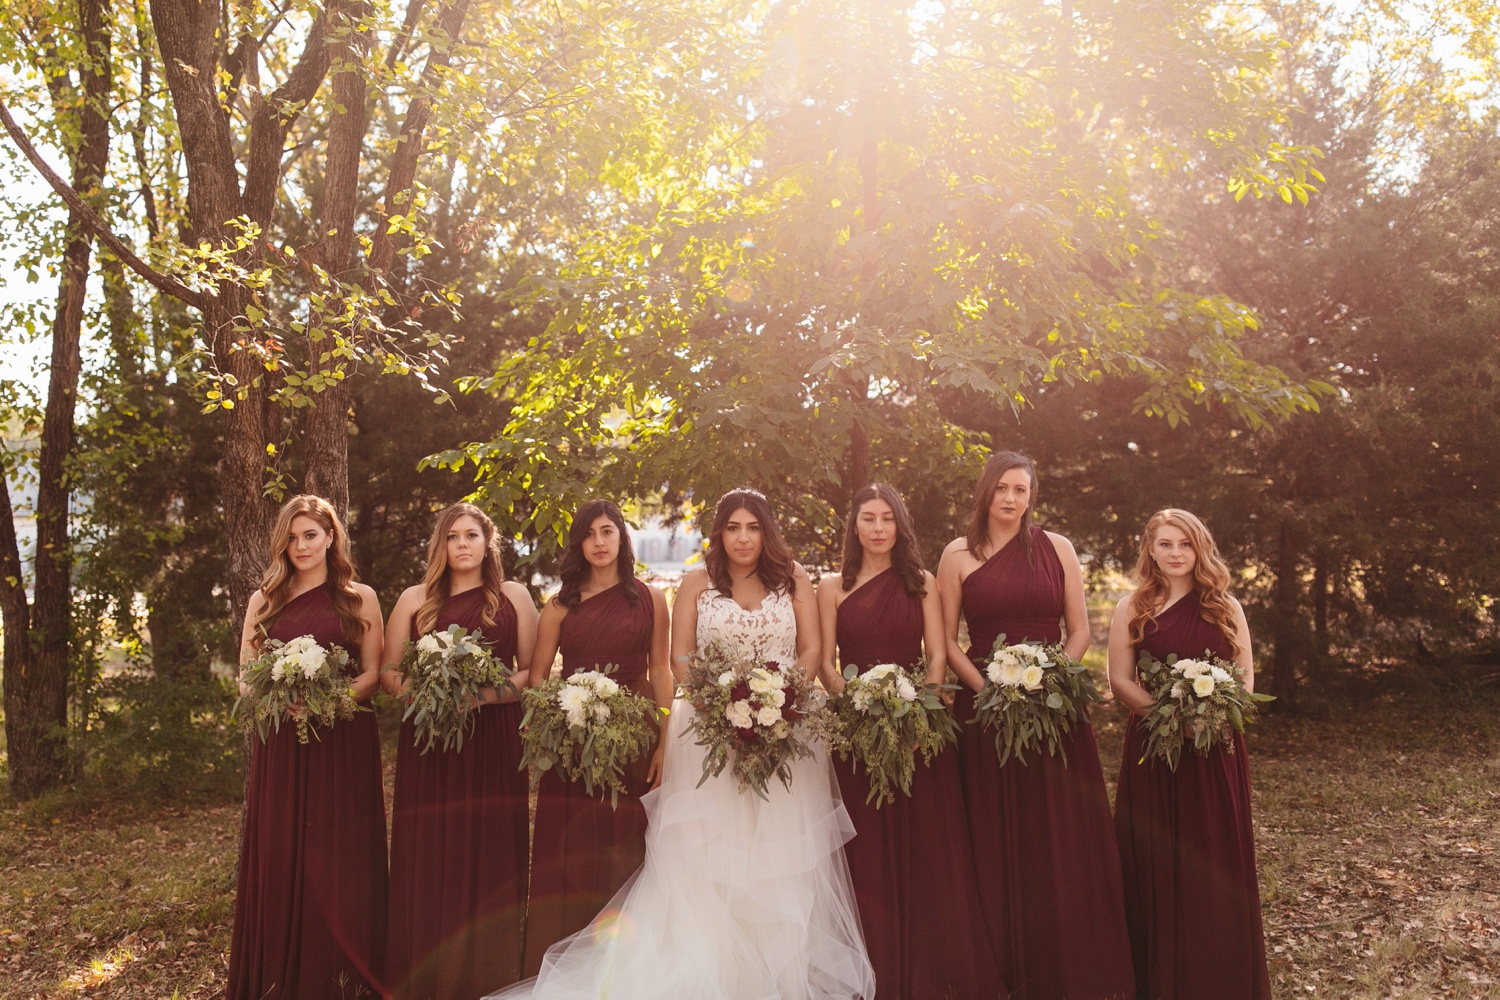 Grant + Lysette | a vibrant, deep burgundy and navy, and mixed metals wedding at Hidden Pines Chapel by North Texas Wedding Photographer Rachel Meagan Photography 041